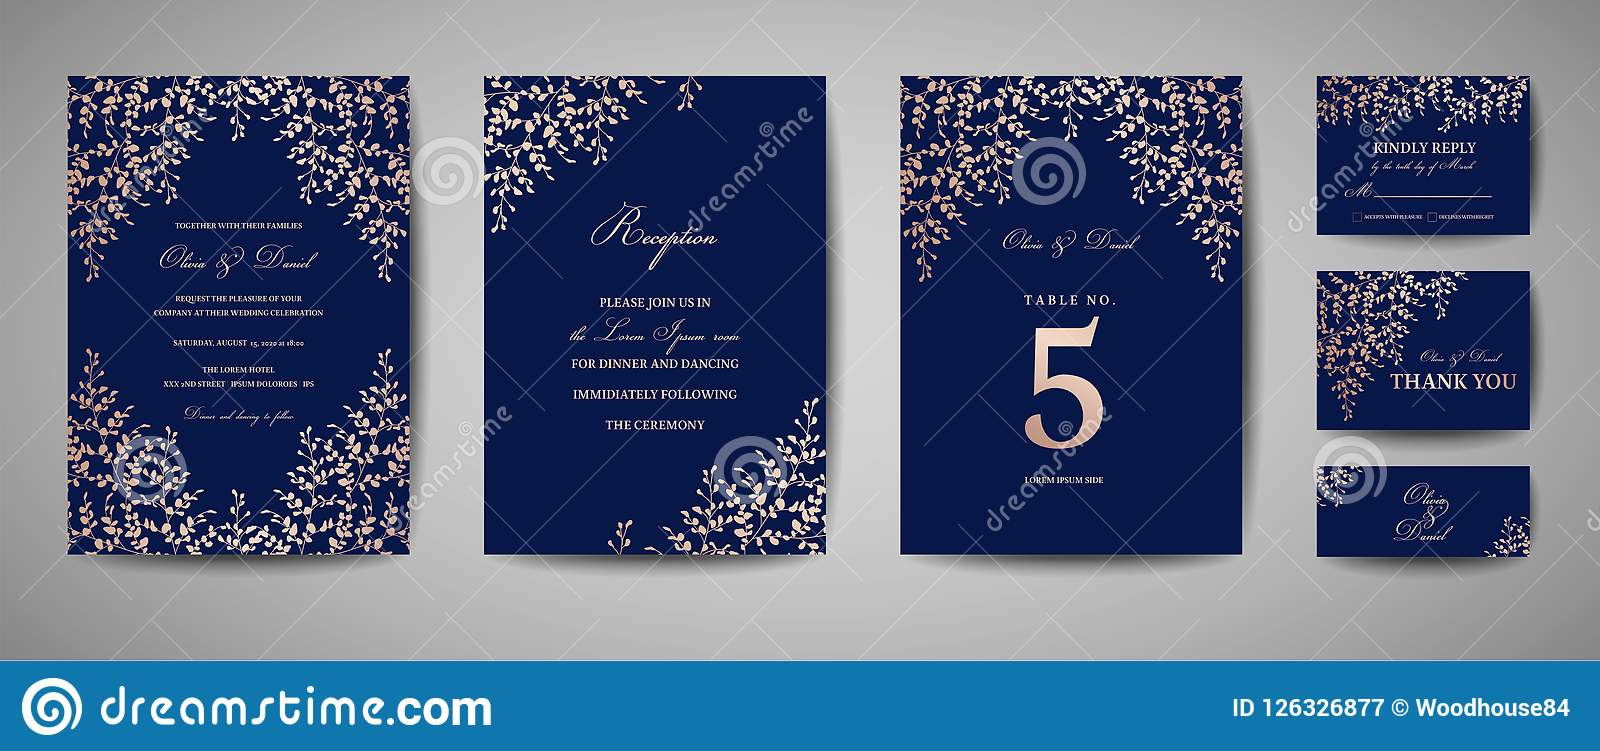 Luxury Wedding Save The Date Invitation Navy Cards Collection With